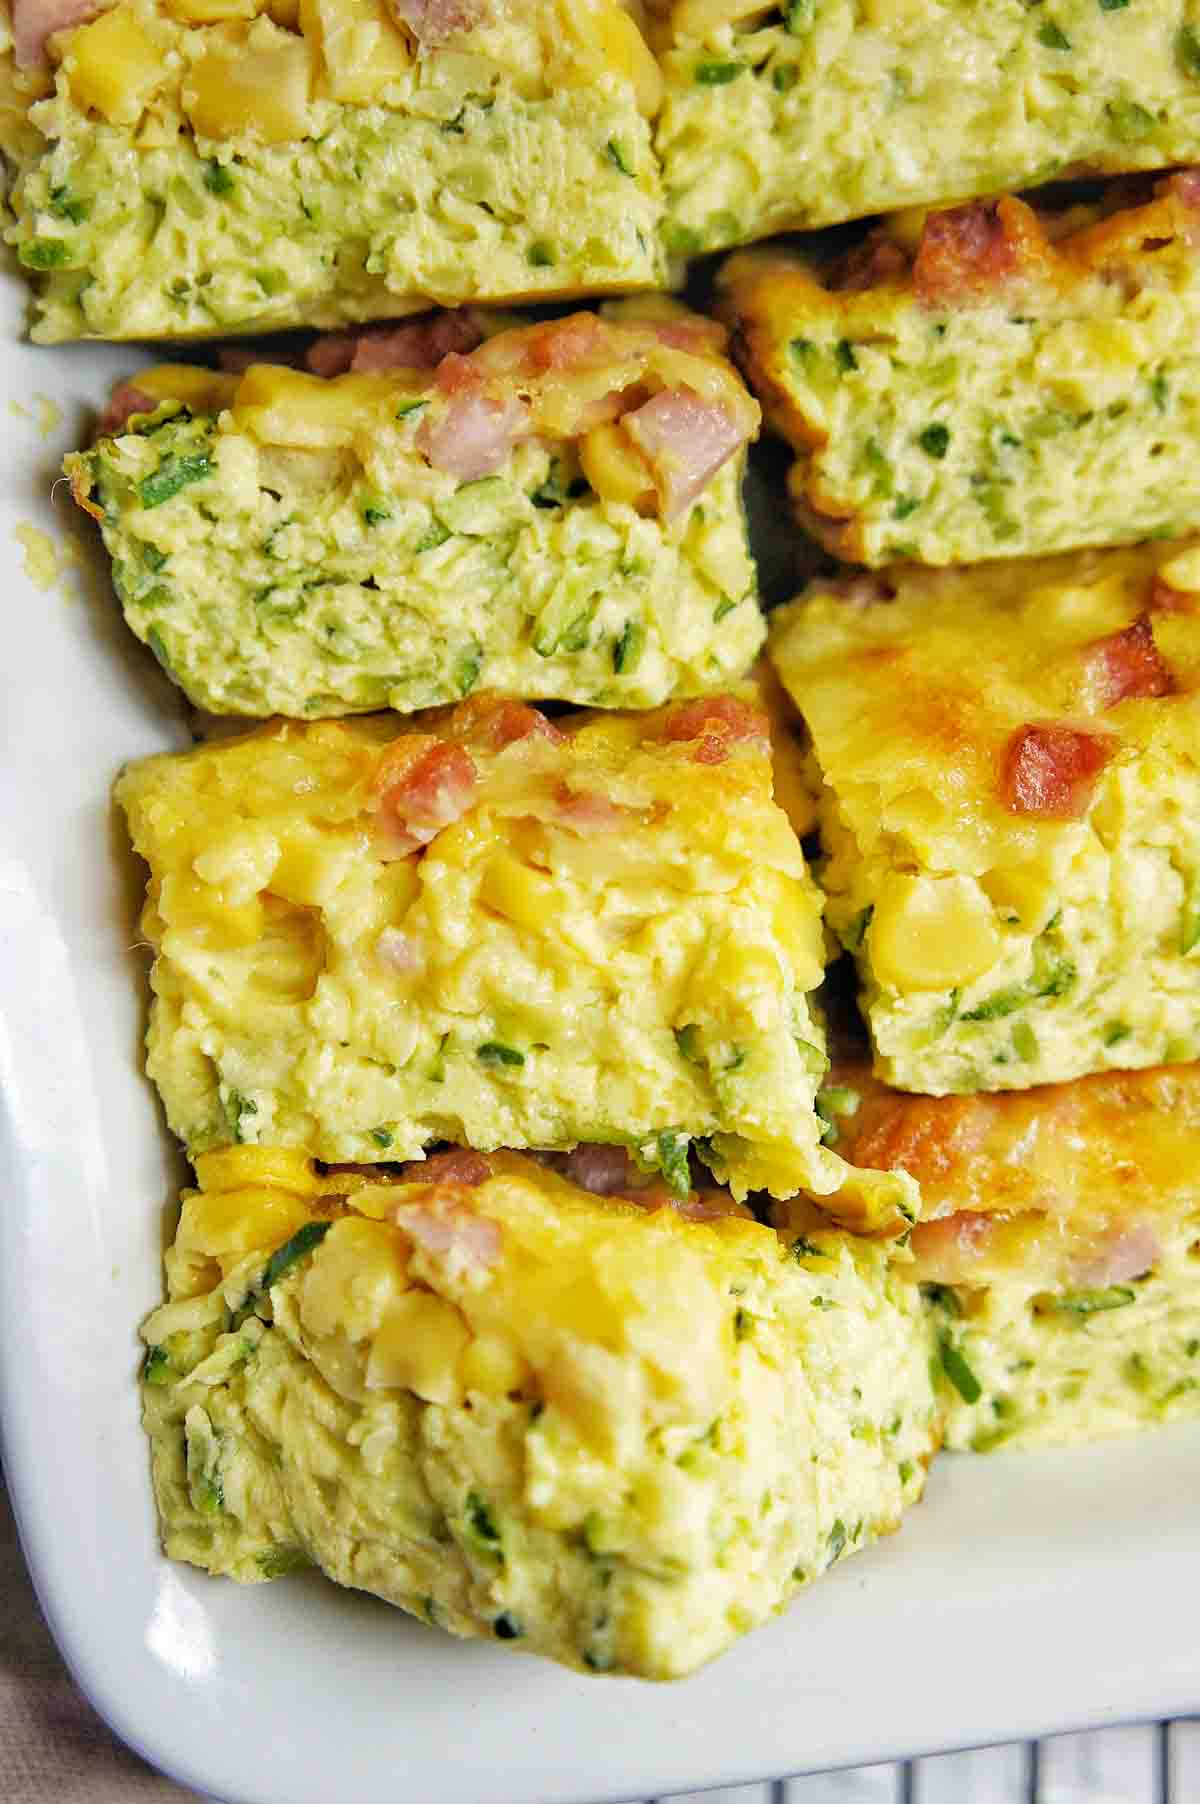 Zucchini slice gluten free cut pieces